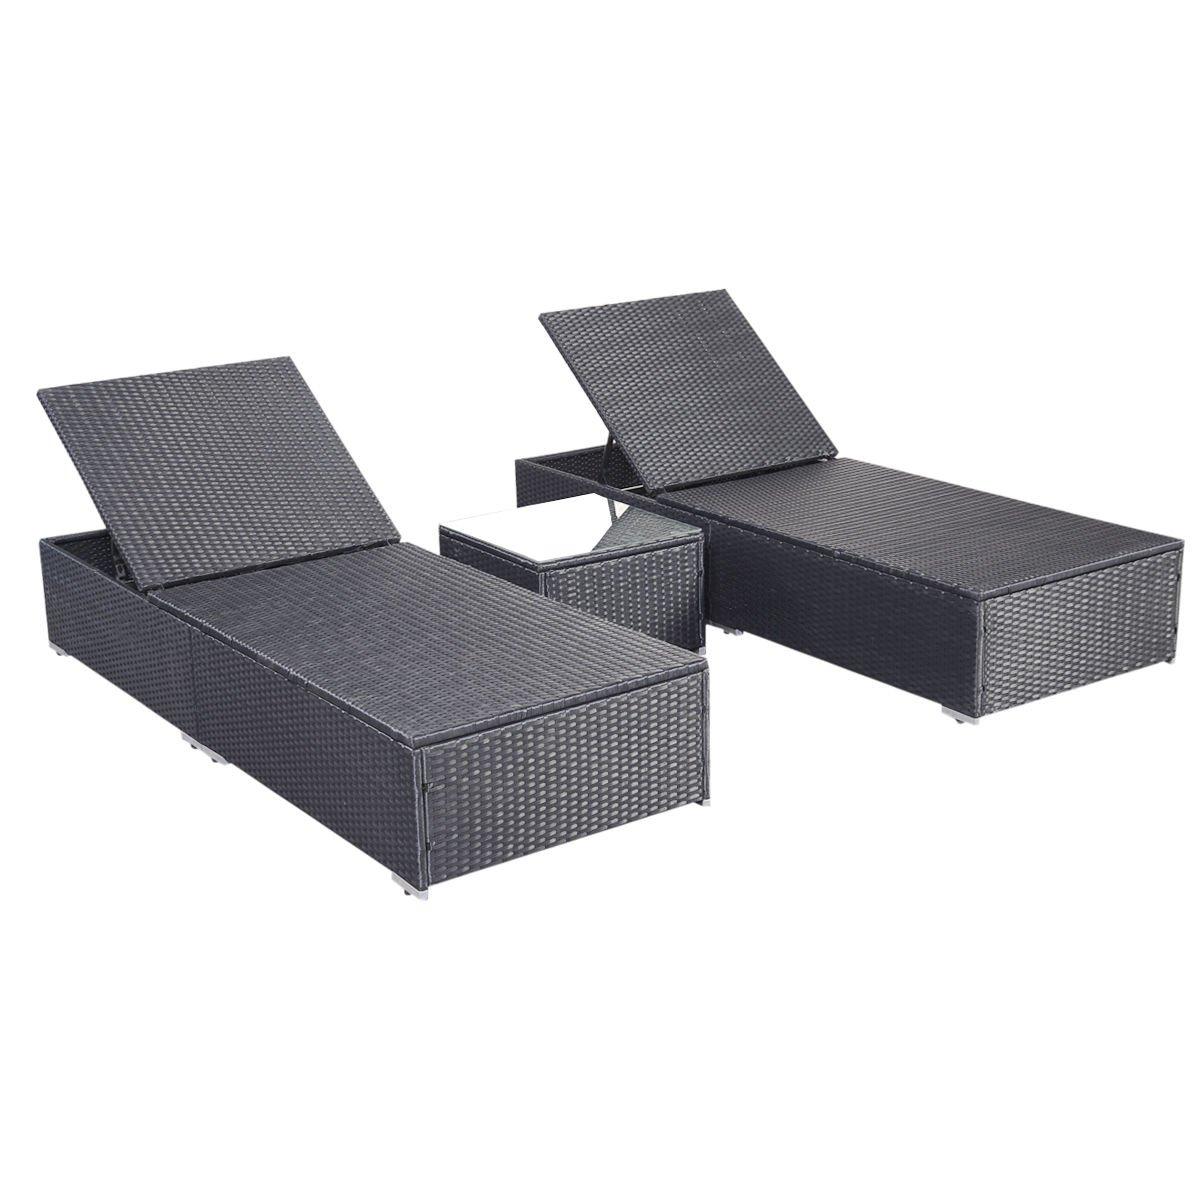 Amazoncom Tangkula 3 Pcs Wicker Outdoor Furniture Pool Chaise